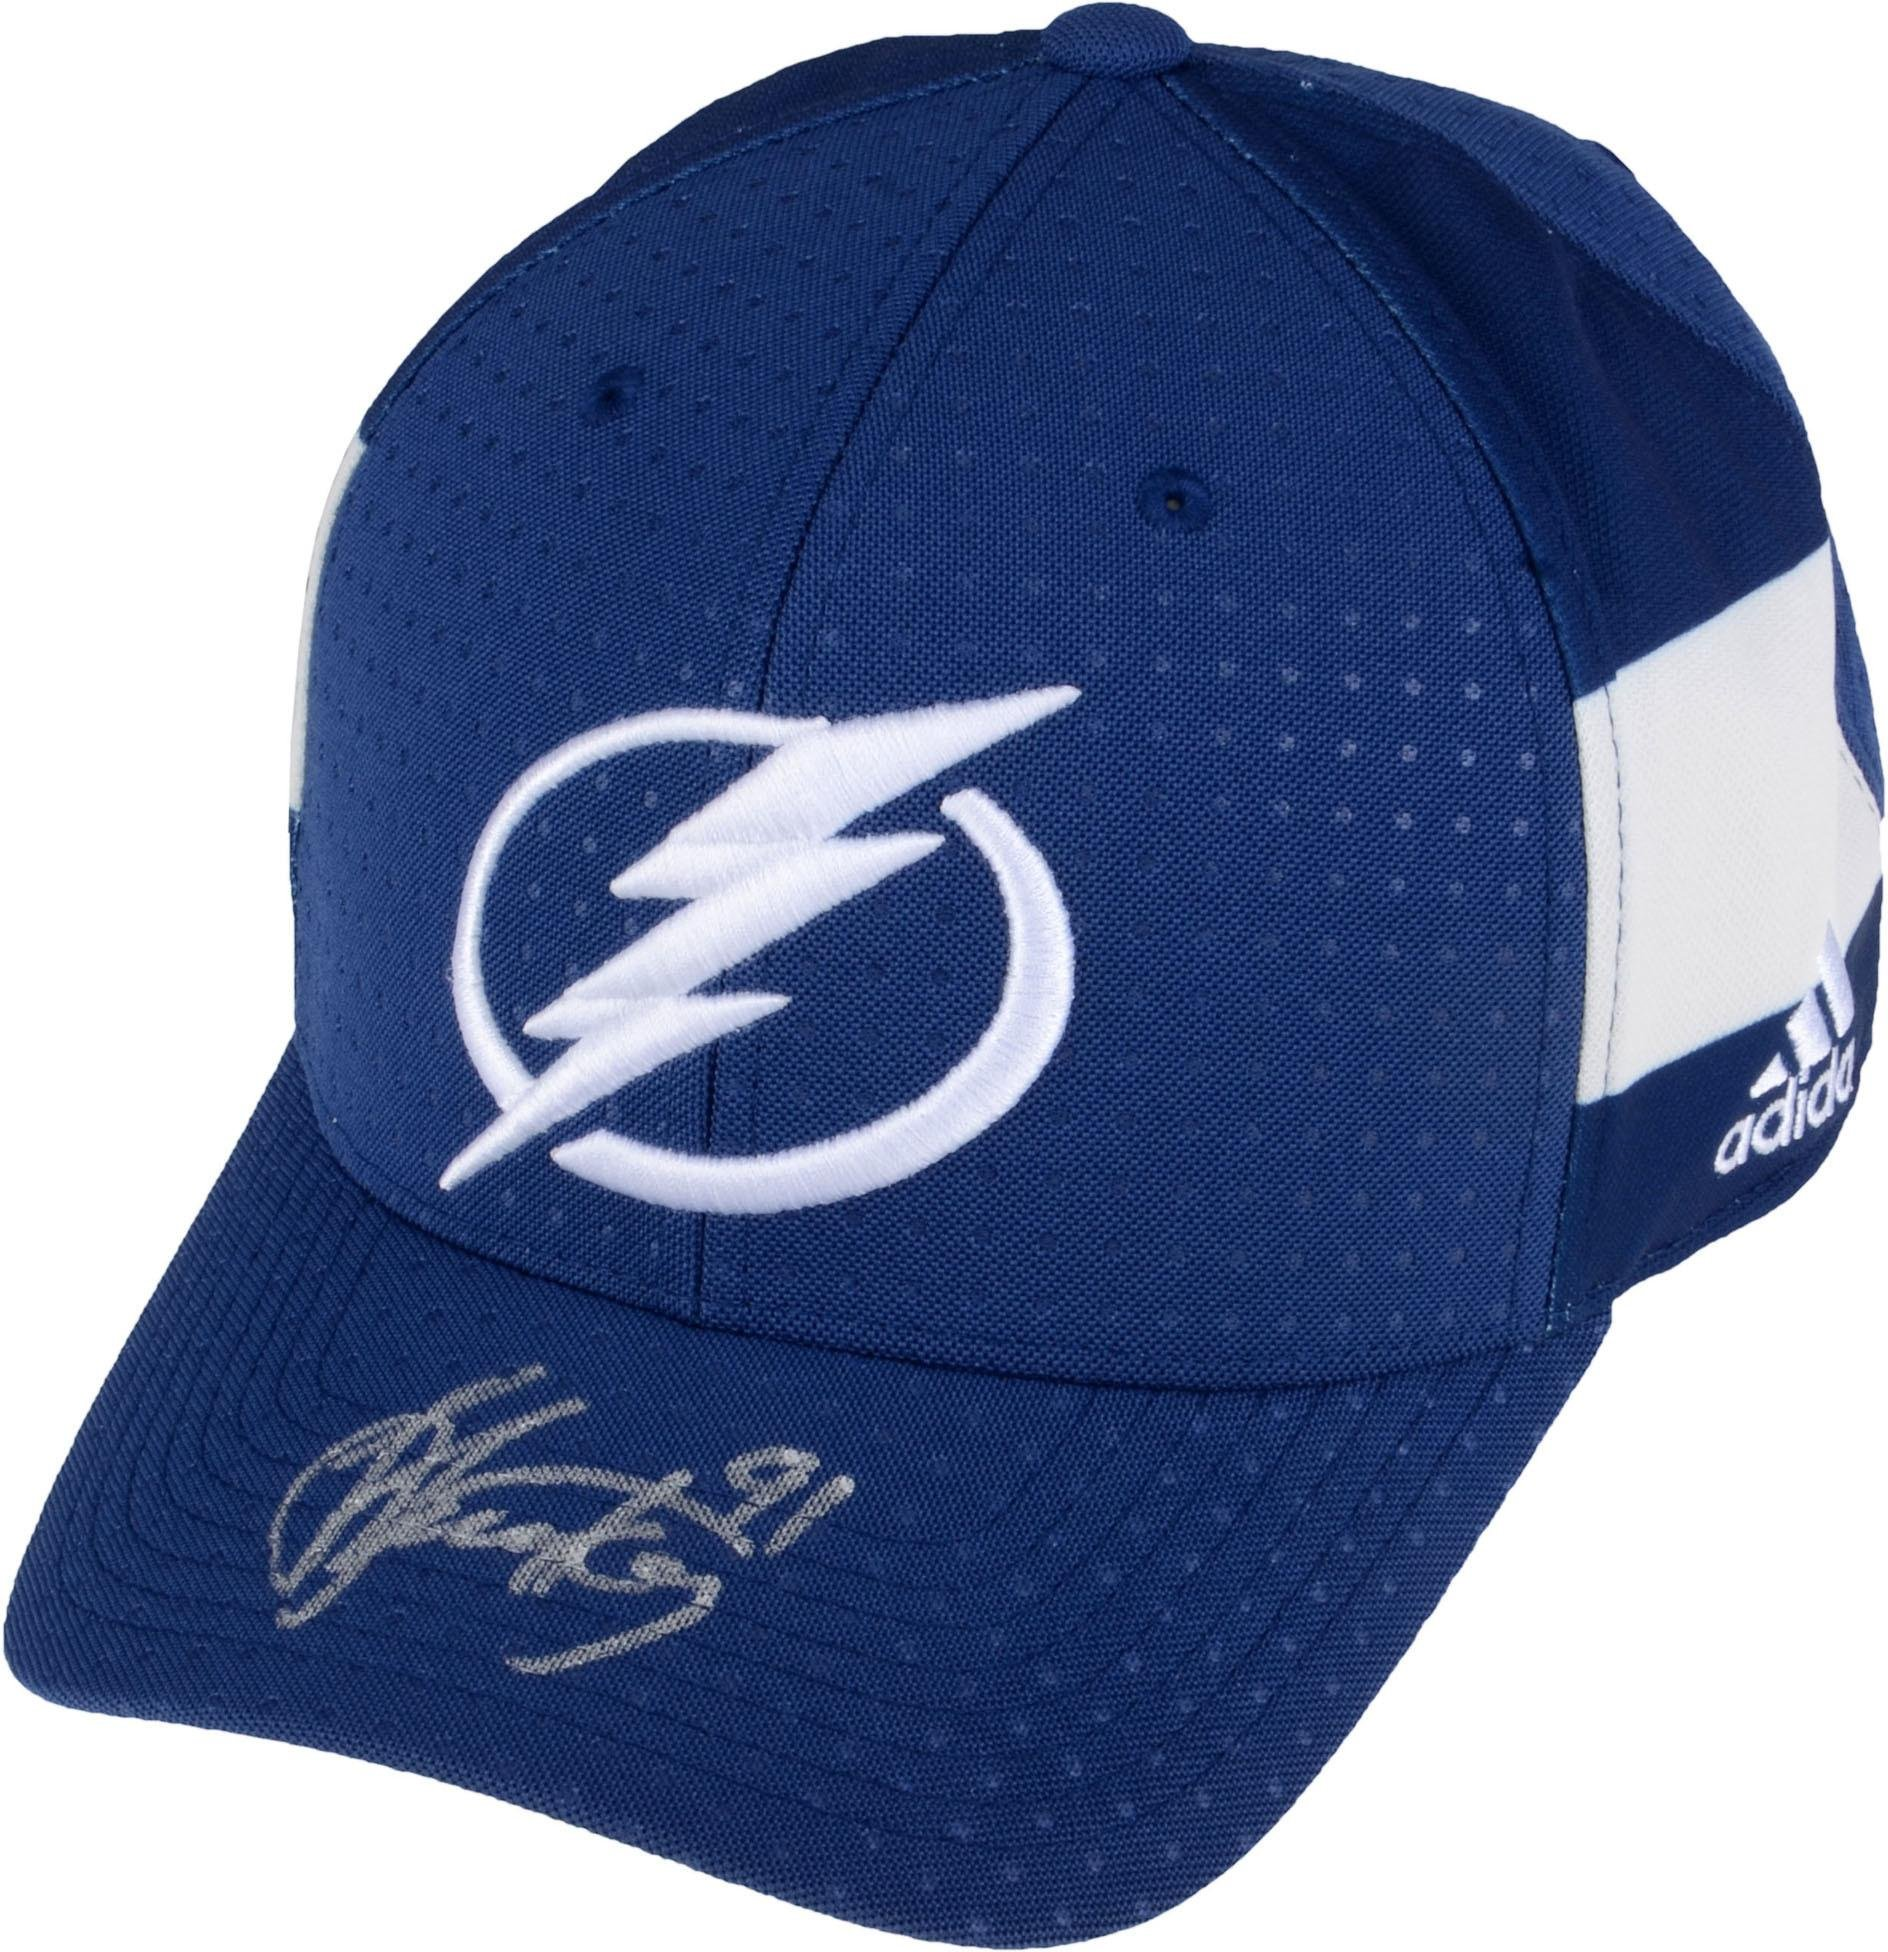 Steven Stamkos Tampa Bay Lightning Autographed Adidas Cap Fanatics Authentic Certified Autographed NHL Hats